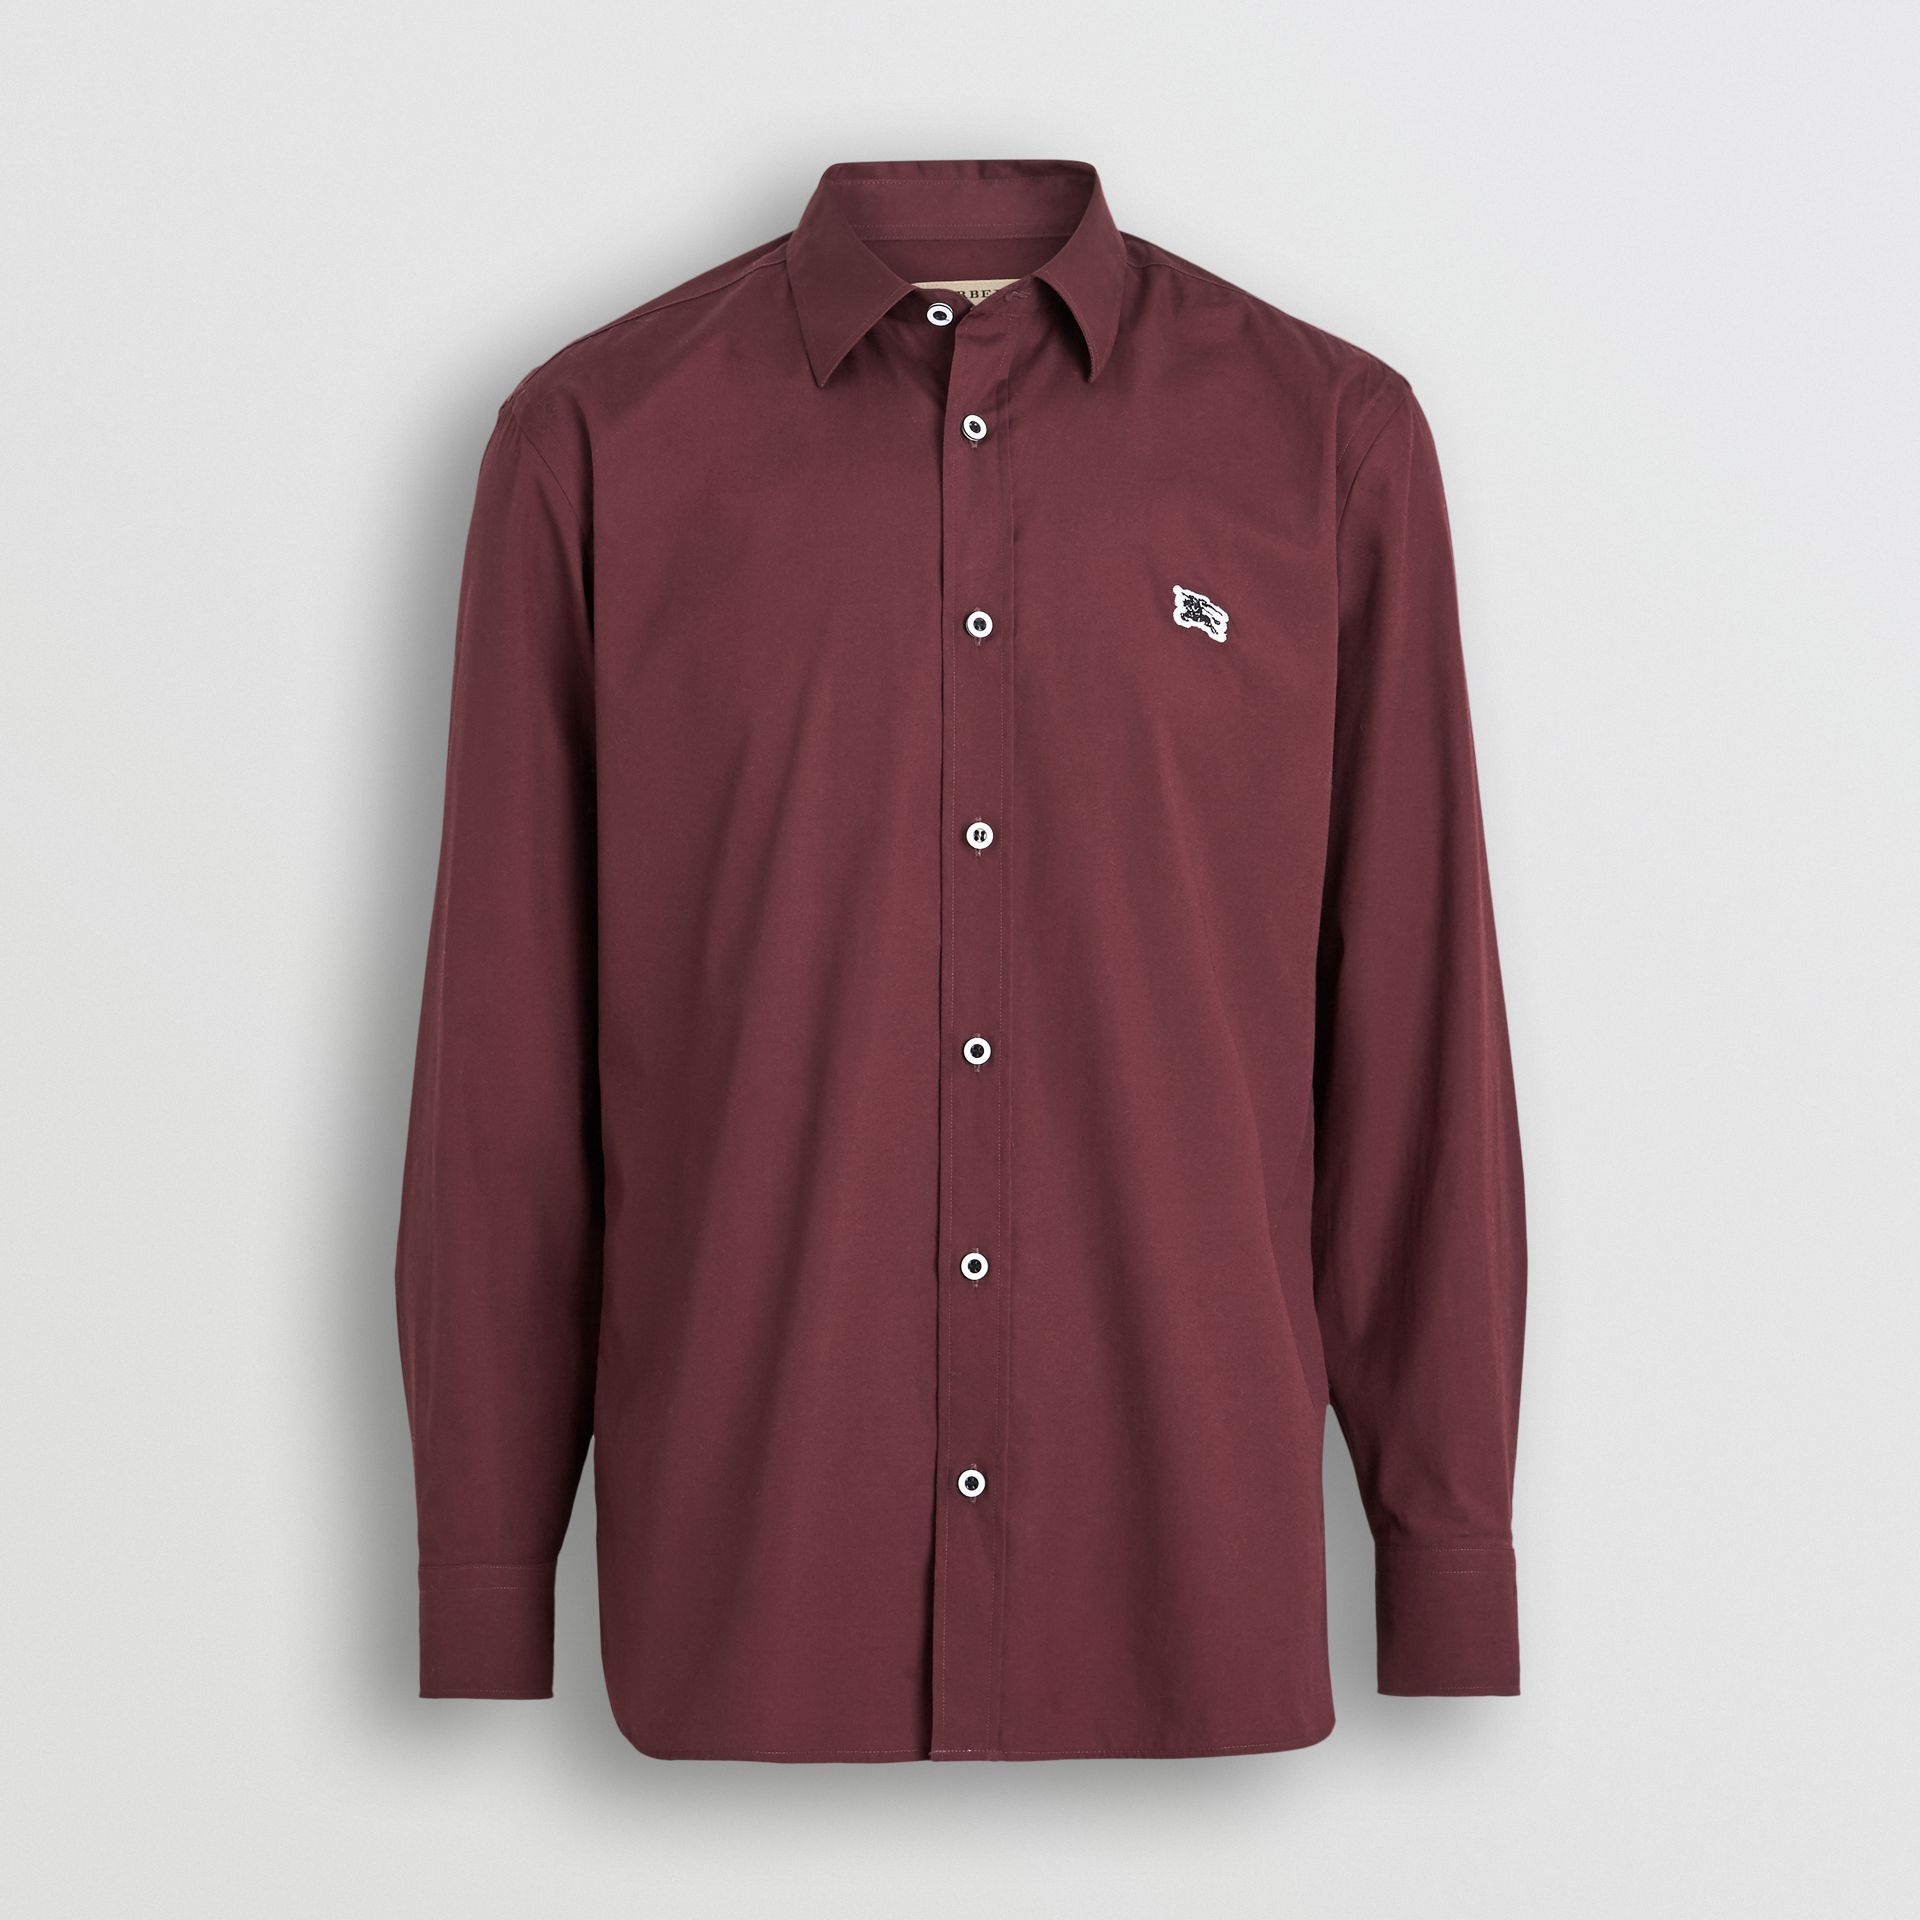 Contrast Button Stretch Cotton Shirt in Oxblood - Men | Burberry United Kingdom - gallery image 3